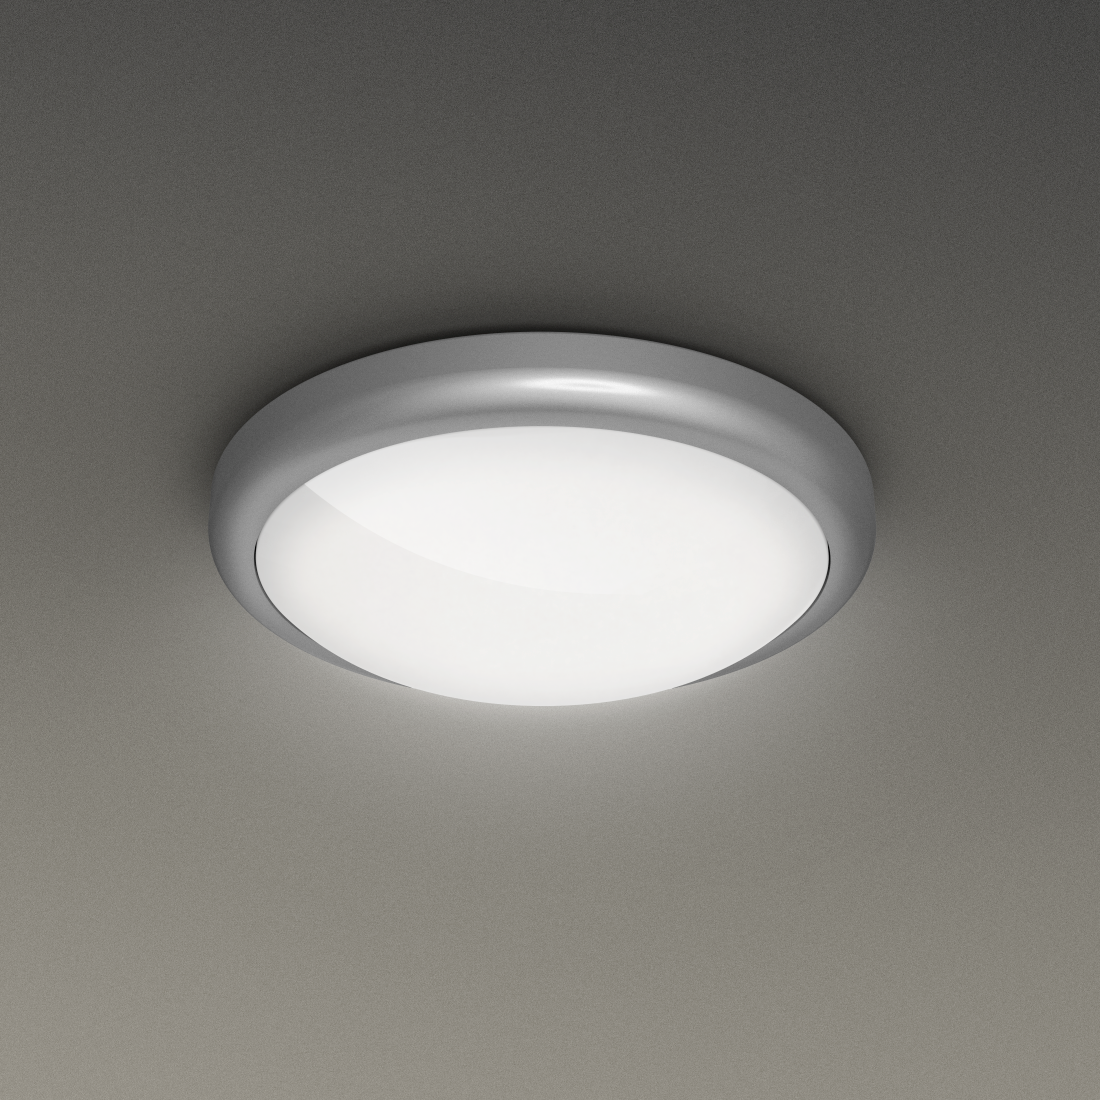 "abx2 High-Res Image 2 - Hama, ""Design"" Smart Home Ceiling Light, without Hub, Voice / App Control, metal"